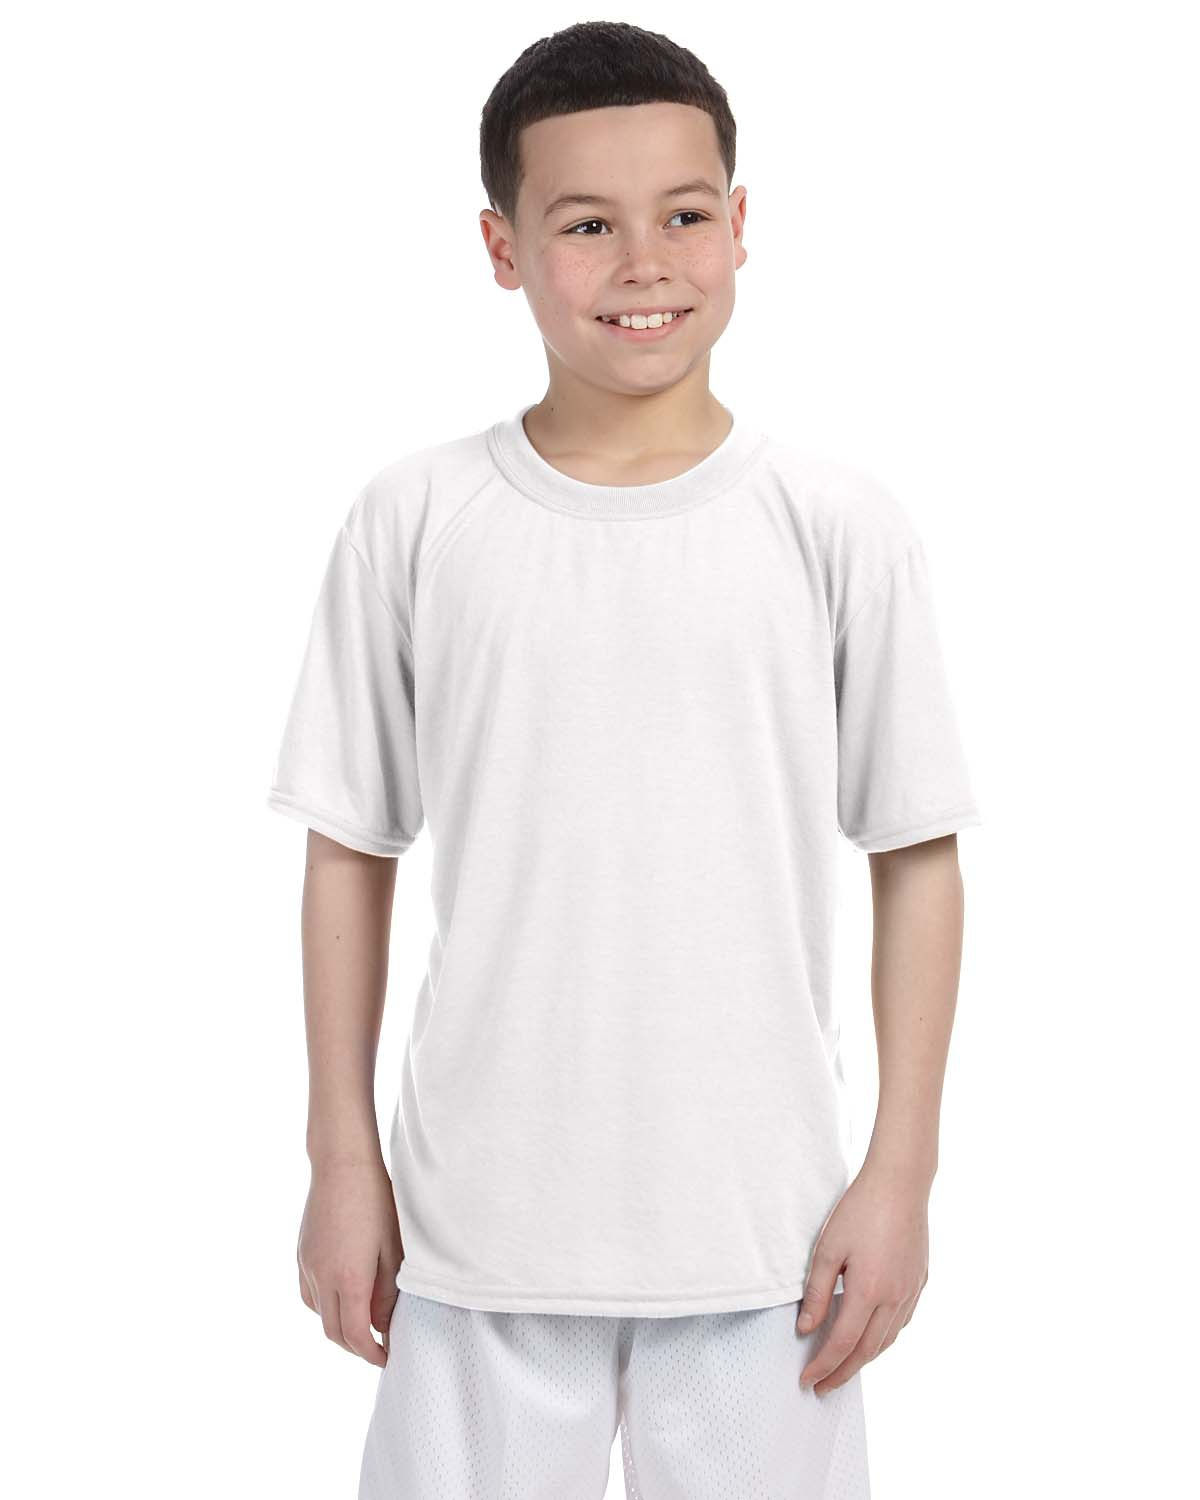 Youth Performance® 5 oz. T-Shirt